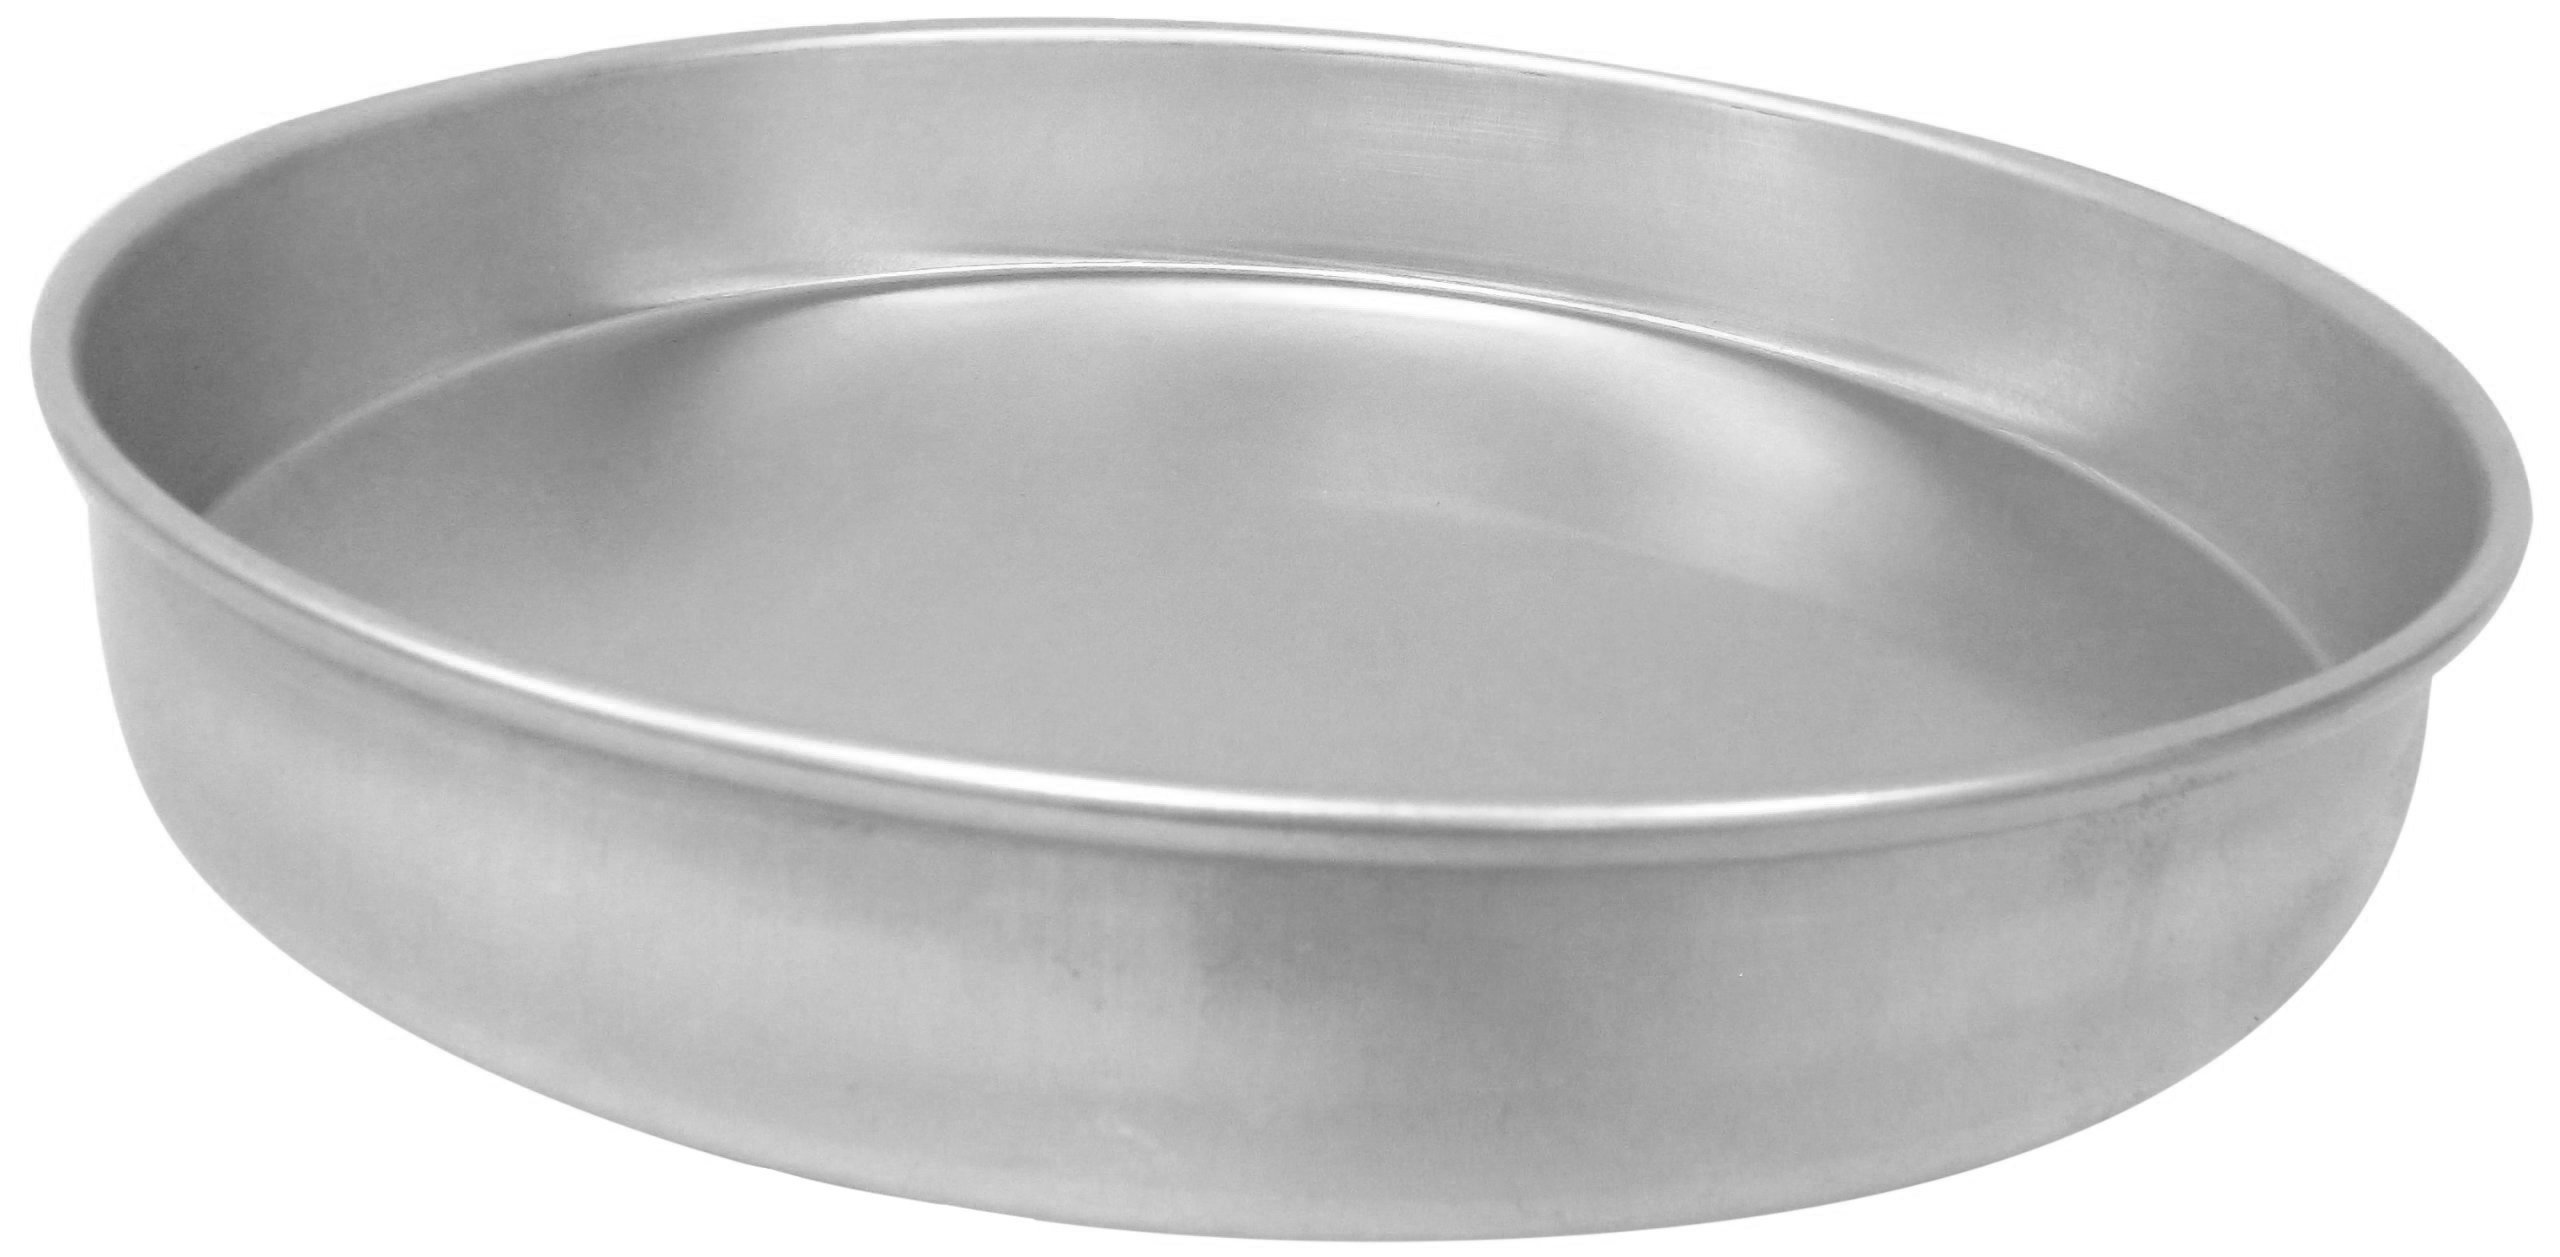 Allied Metal CP17X2 Hard Aluminum Pizza/Cake Pan, Straight Sided, 17 by 2-Inch